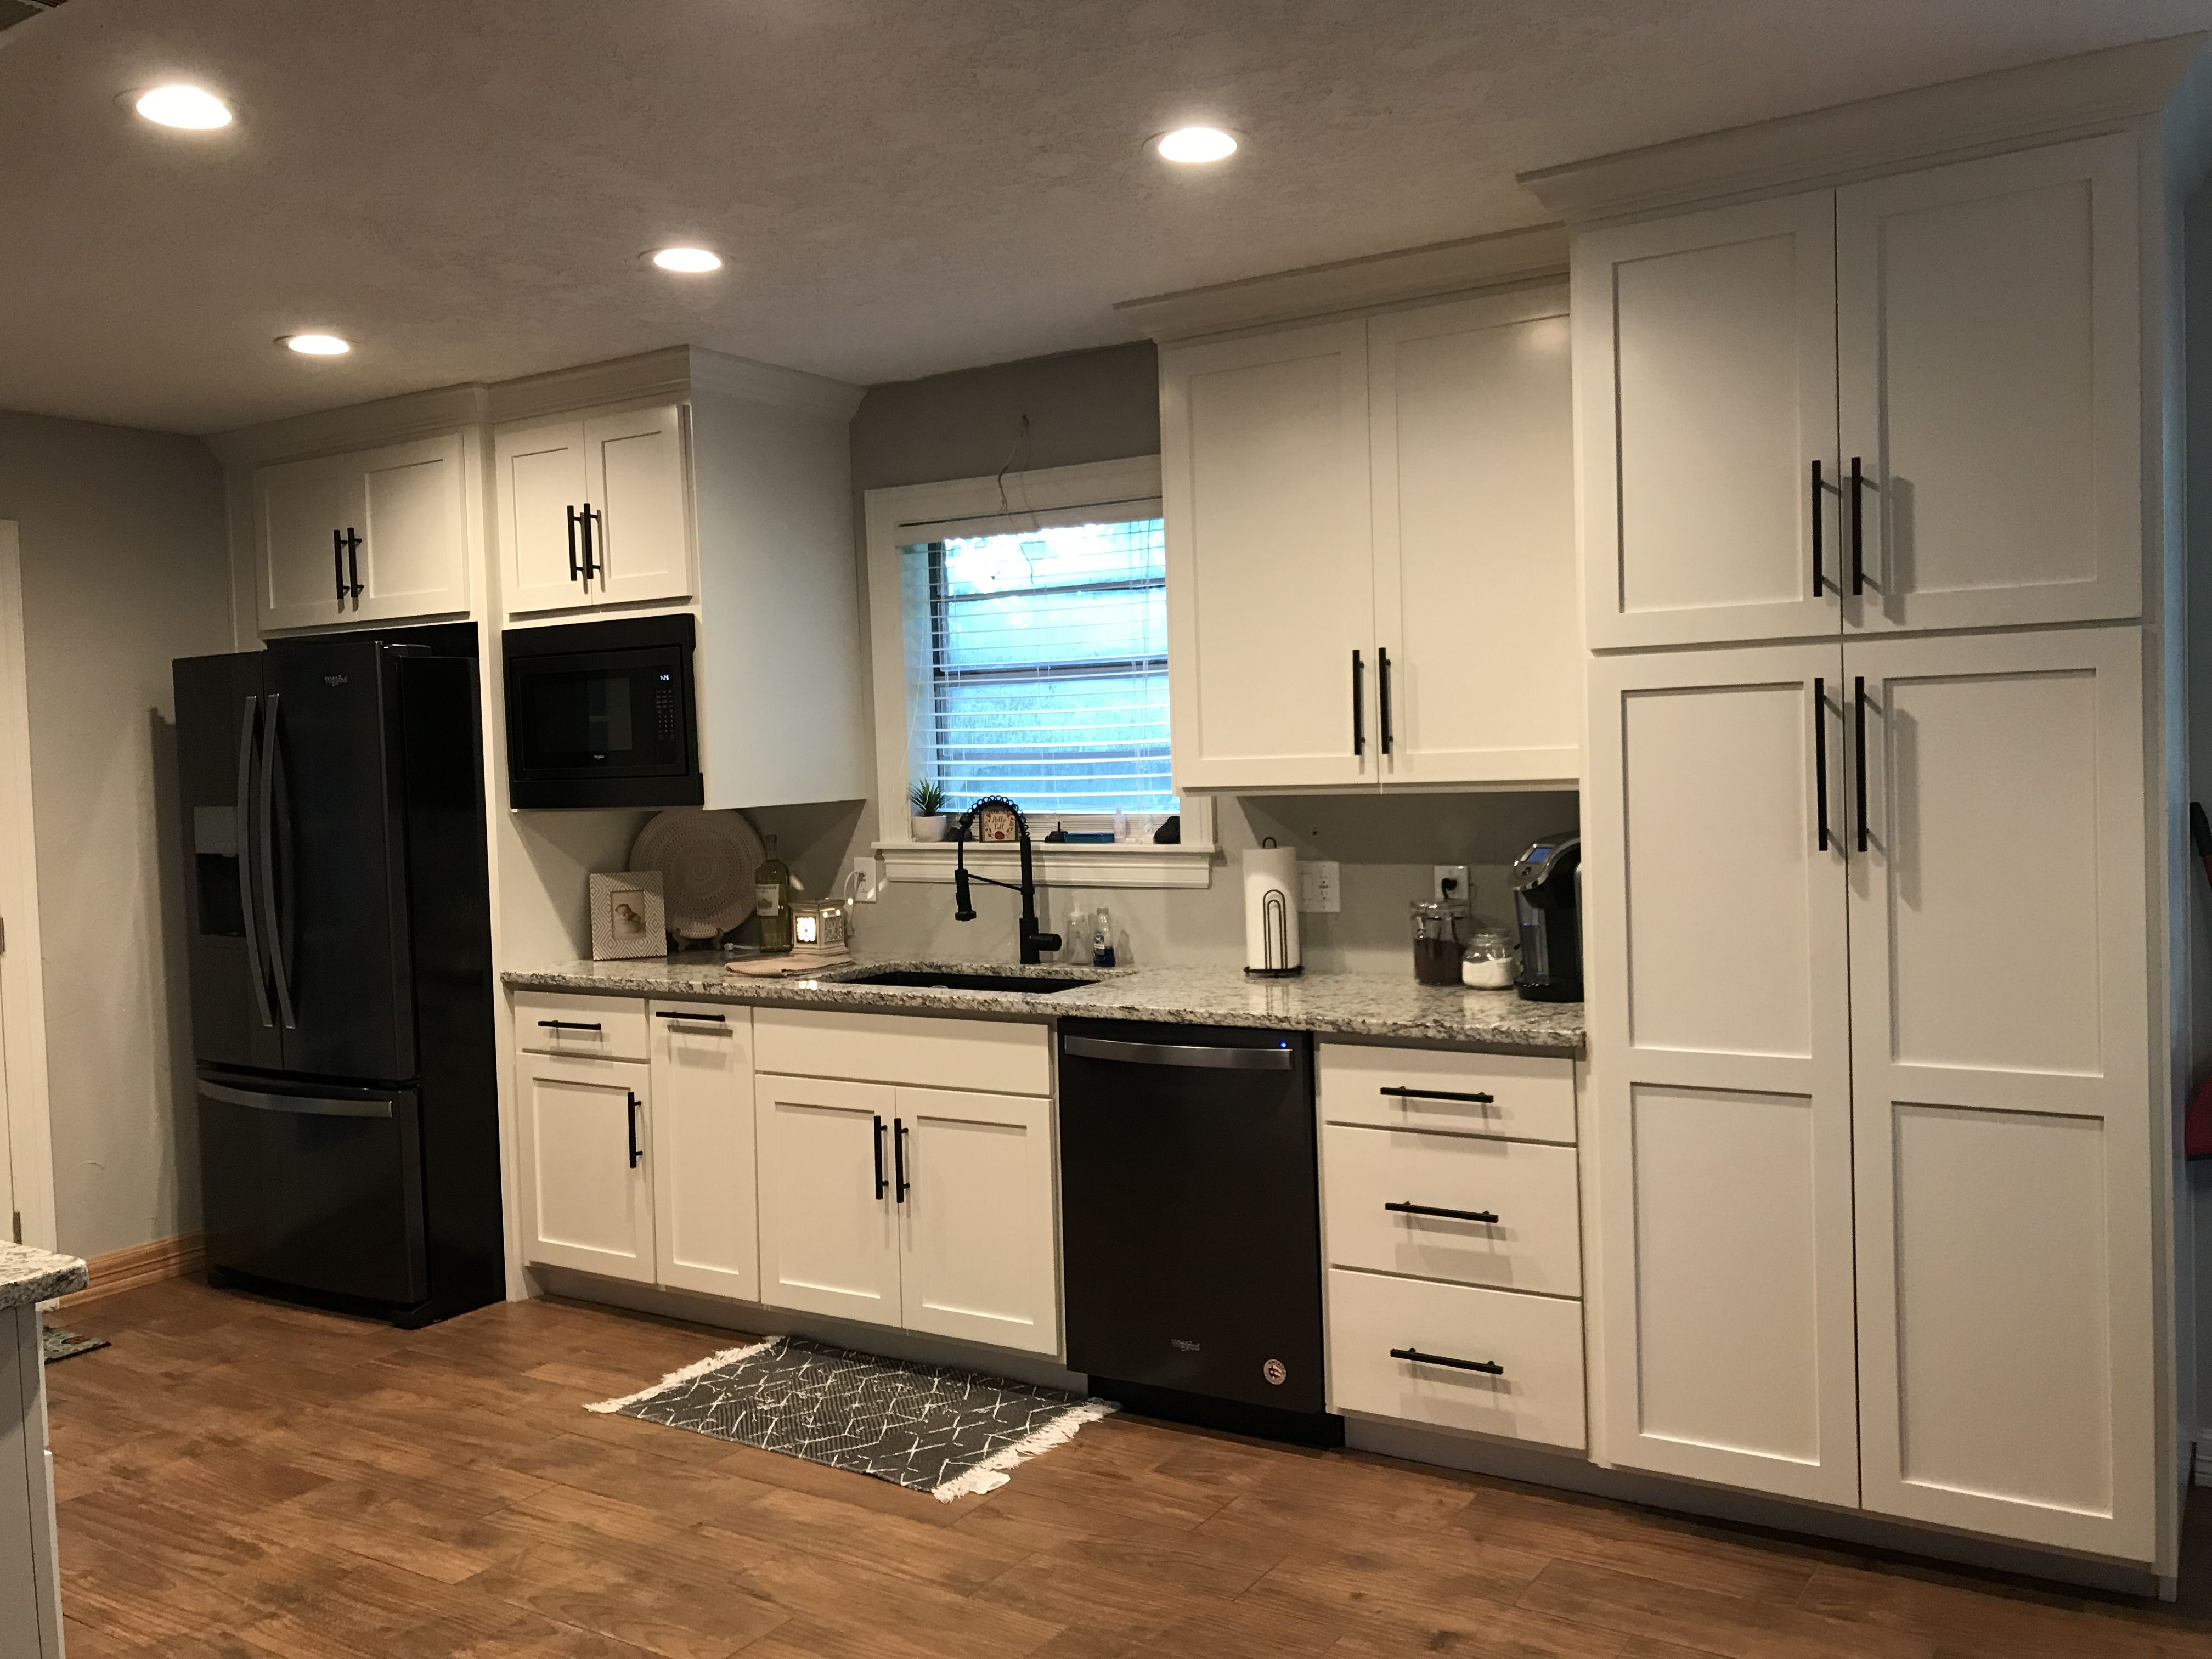 Sherwin Williams Alabaster kitchen with black